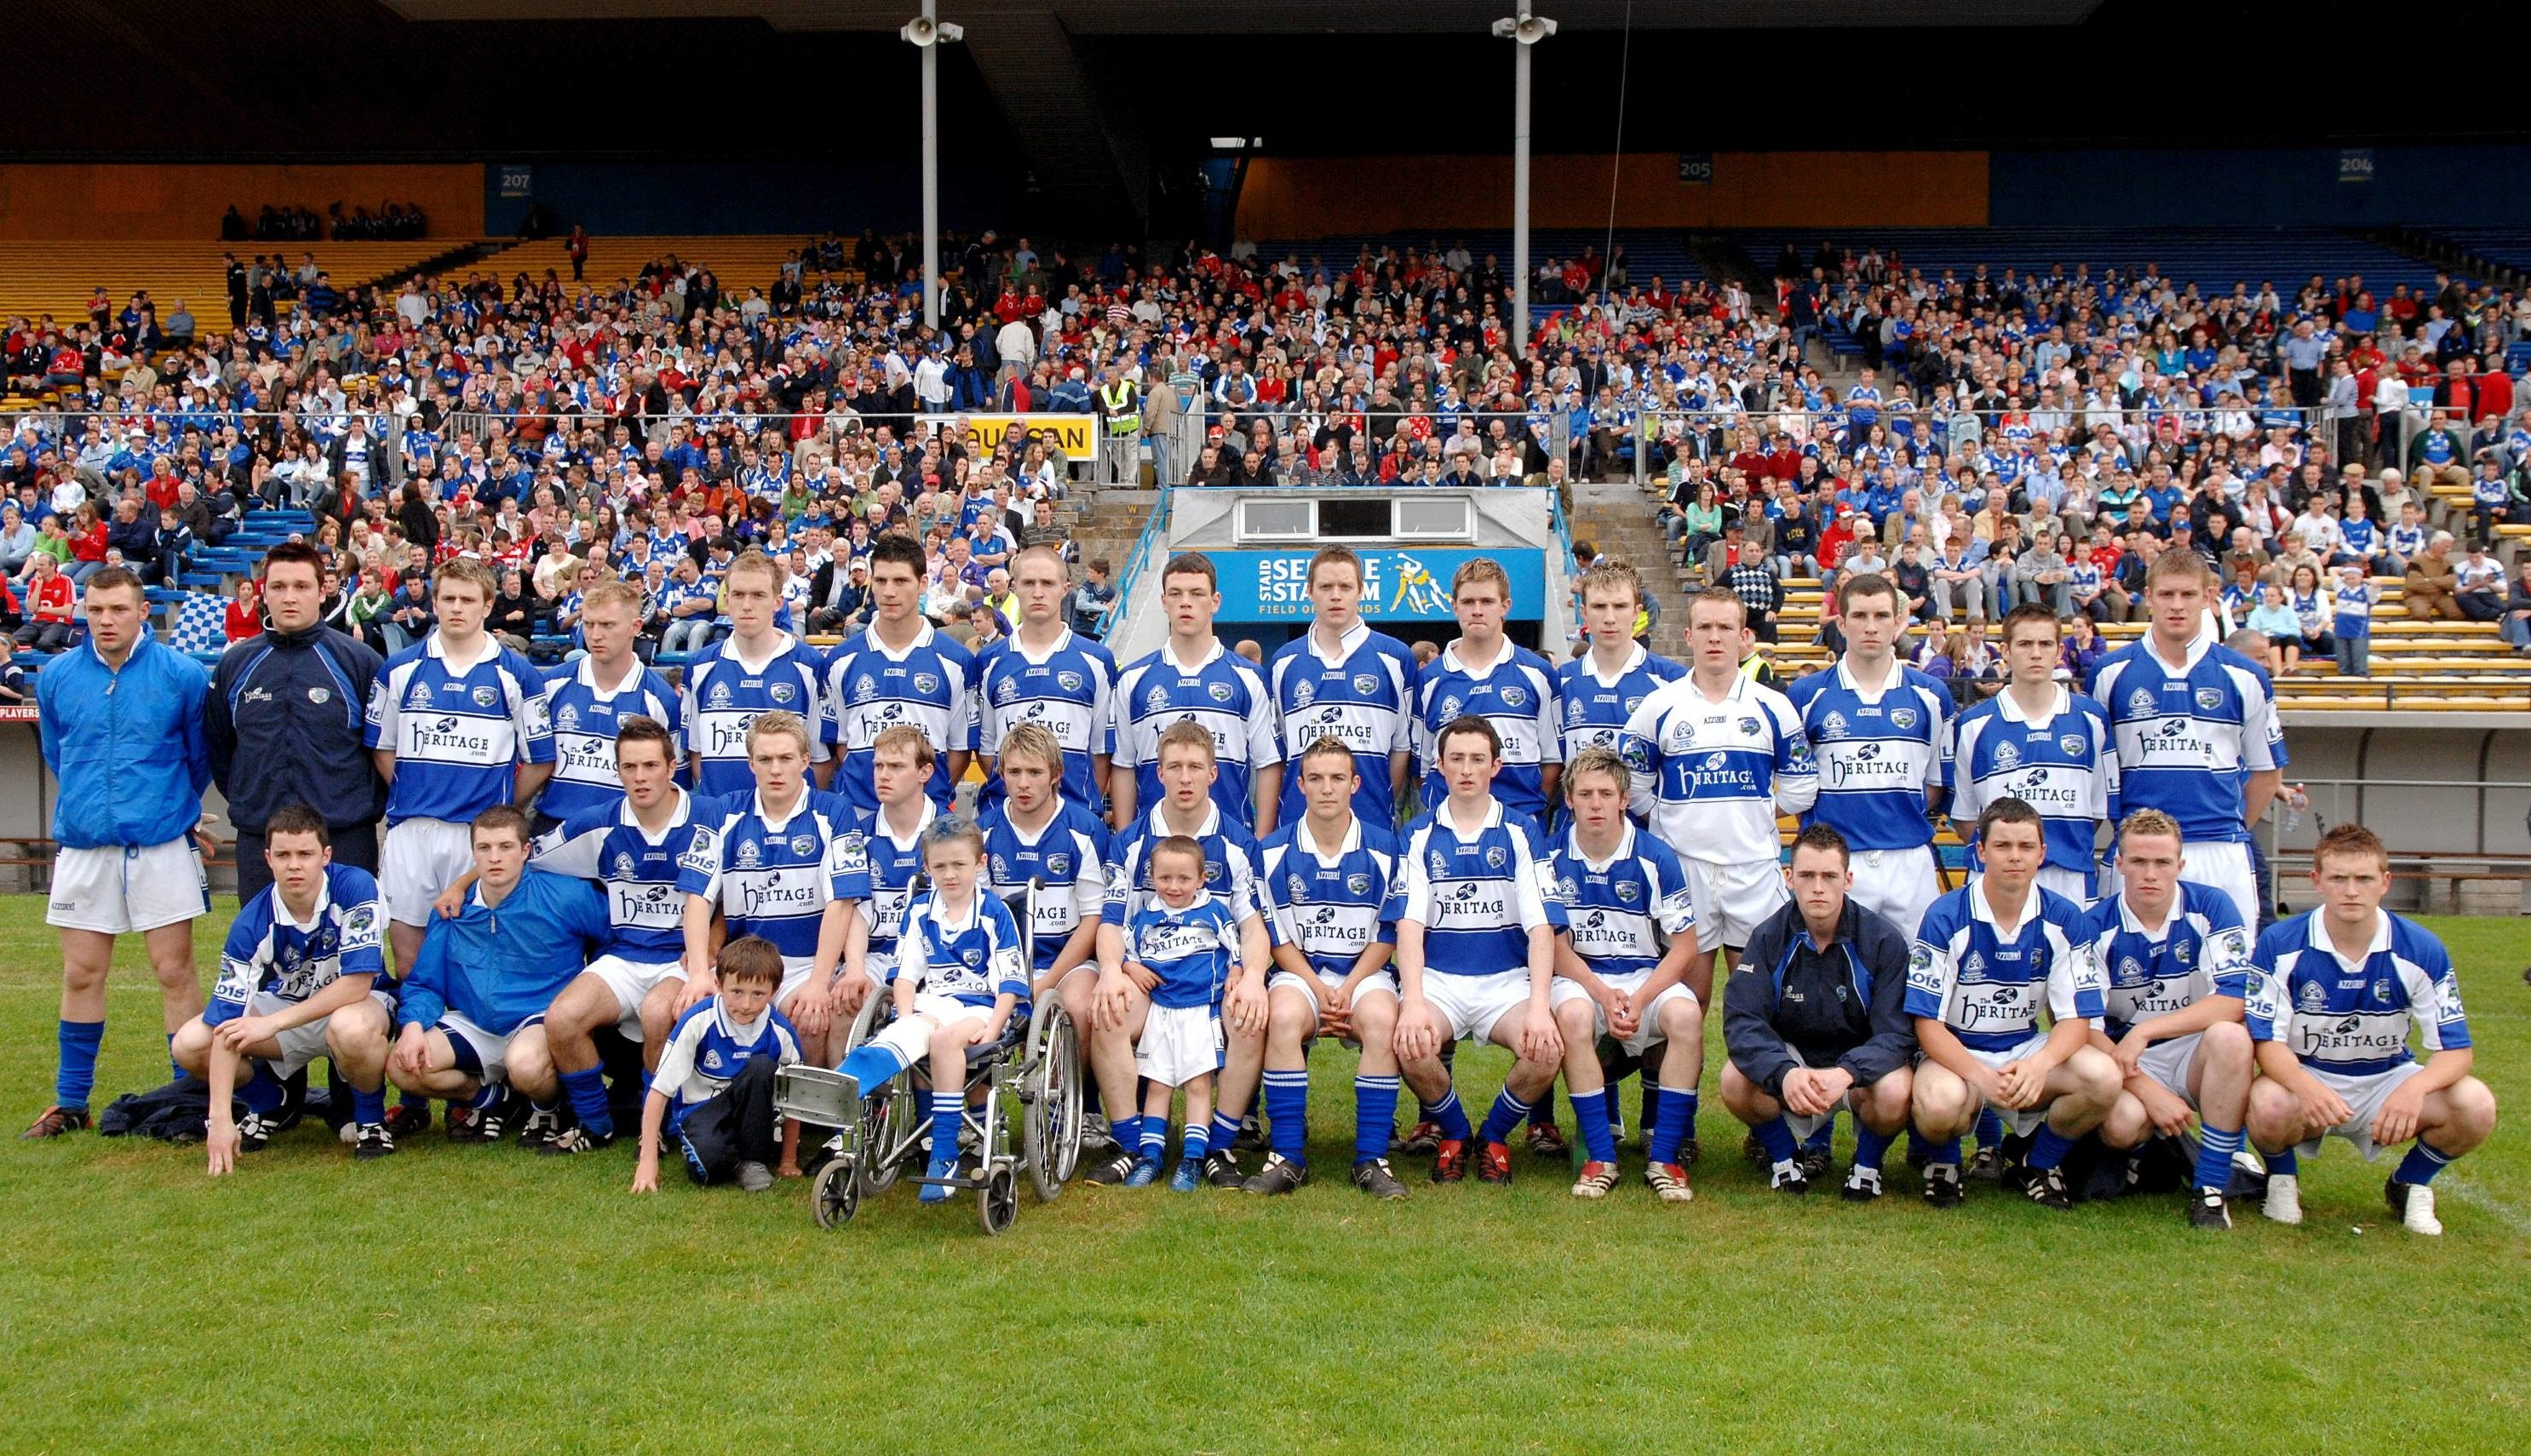 The Laois Under 21 squad before the Cadbury All-Ireland U21 Football Final against Cork